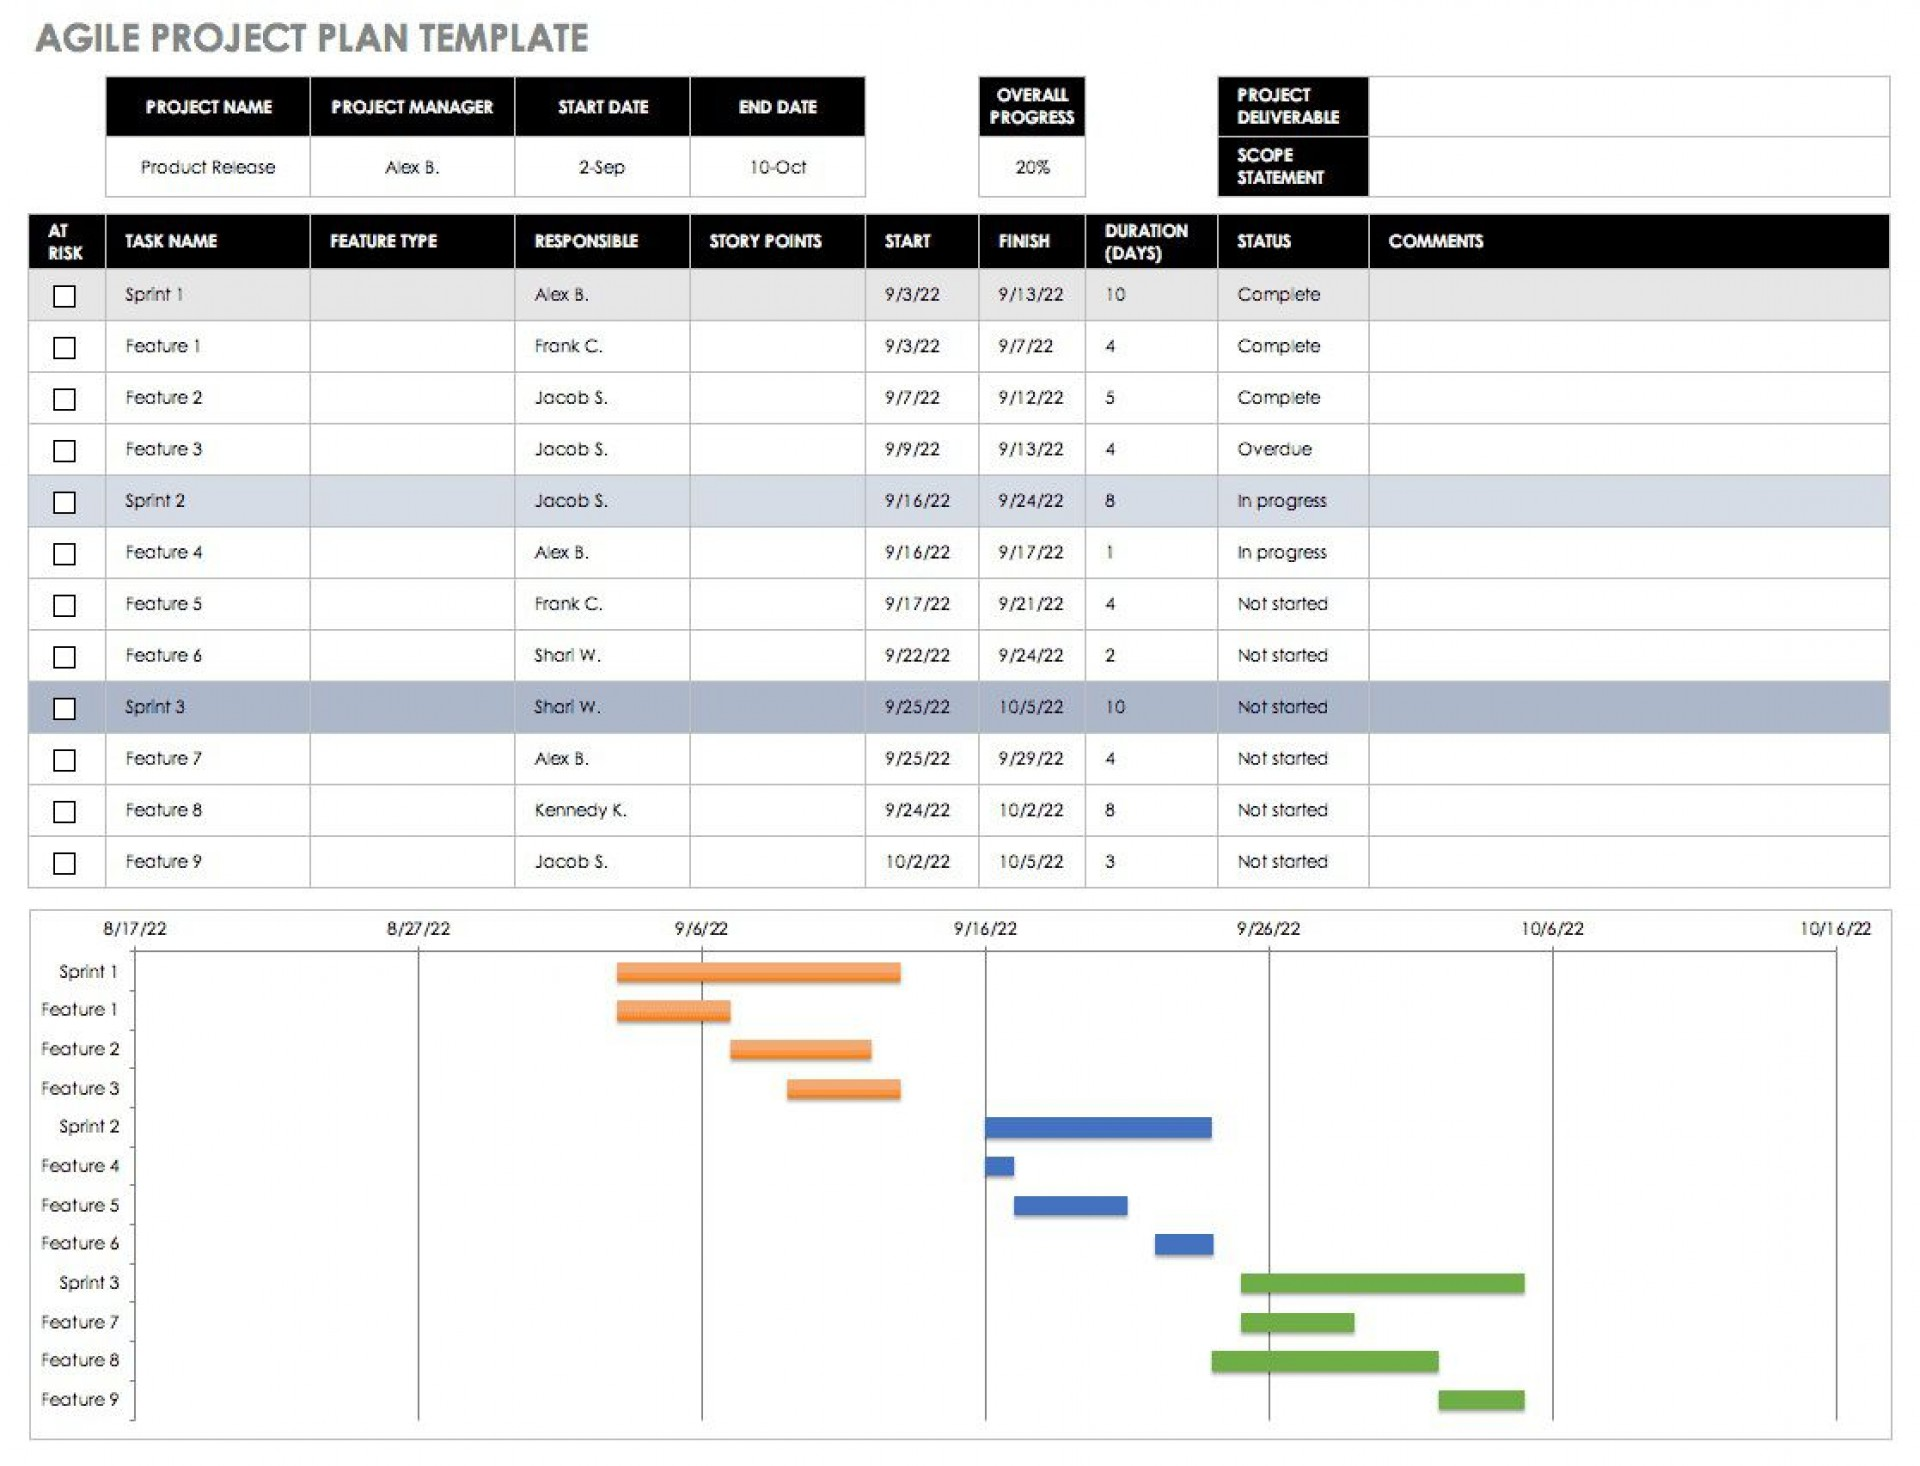 004 Simple Agile Test Plan Template Example  Word Document1920